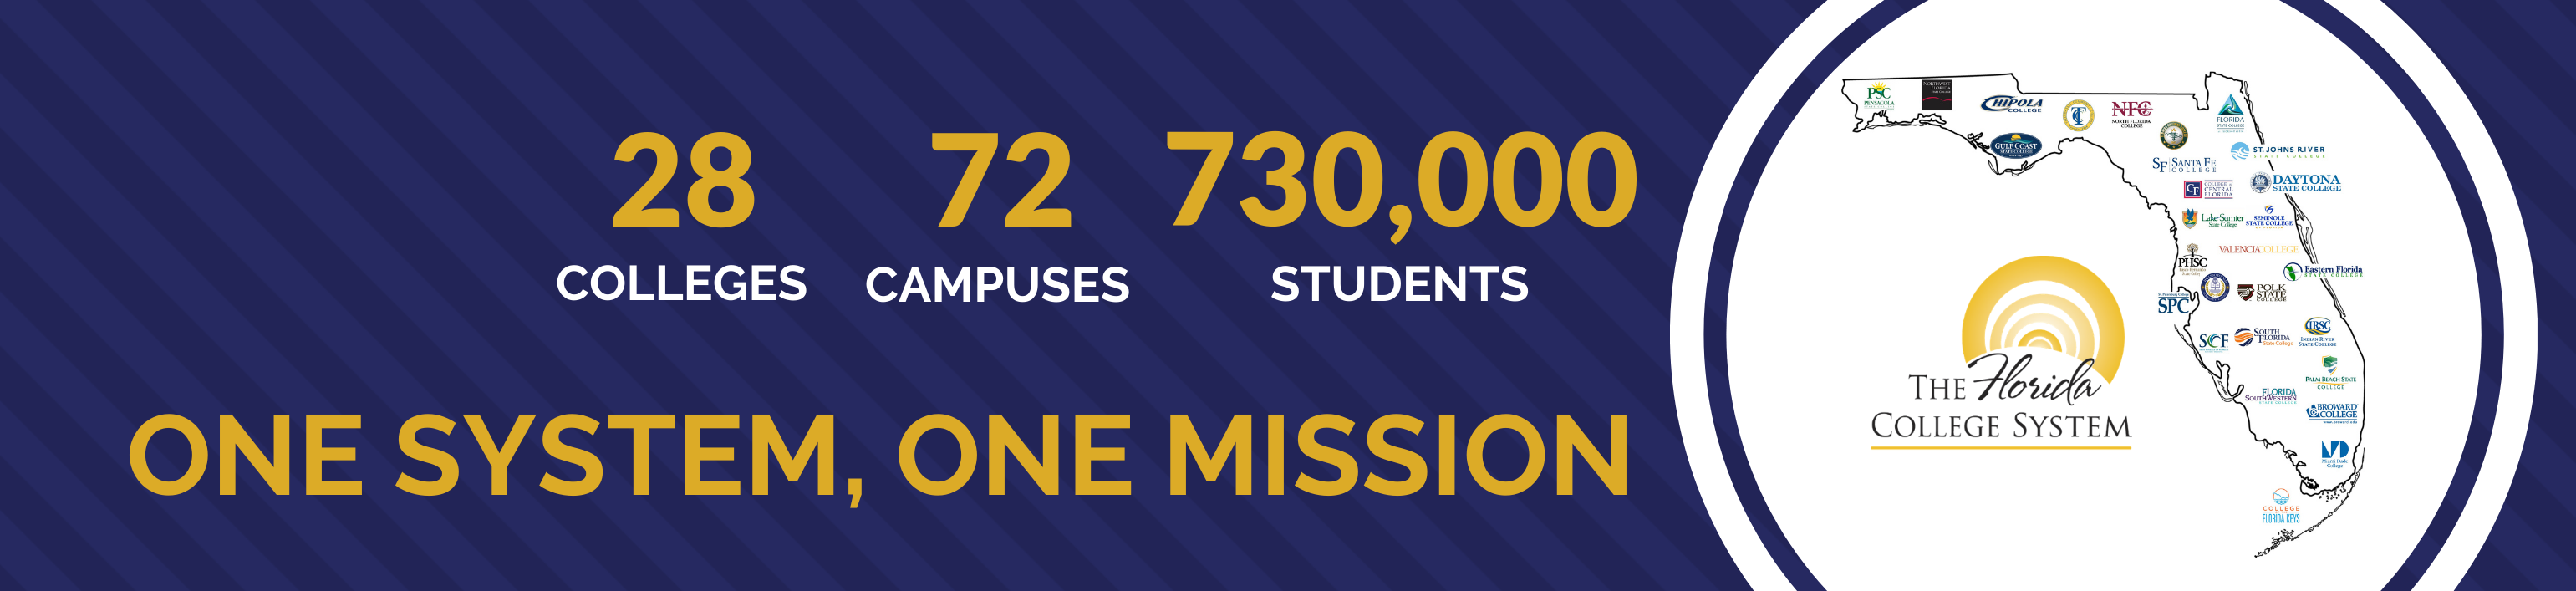 Florida College System - 28 Colleges, 72 Campuses, 733,000 Students. One system, one mission.